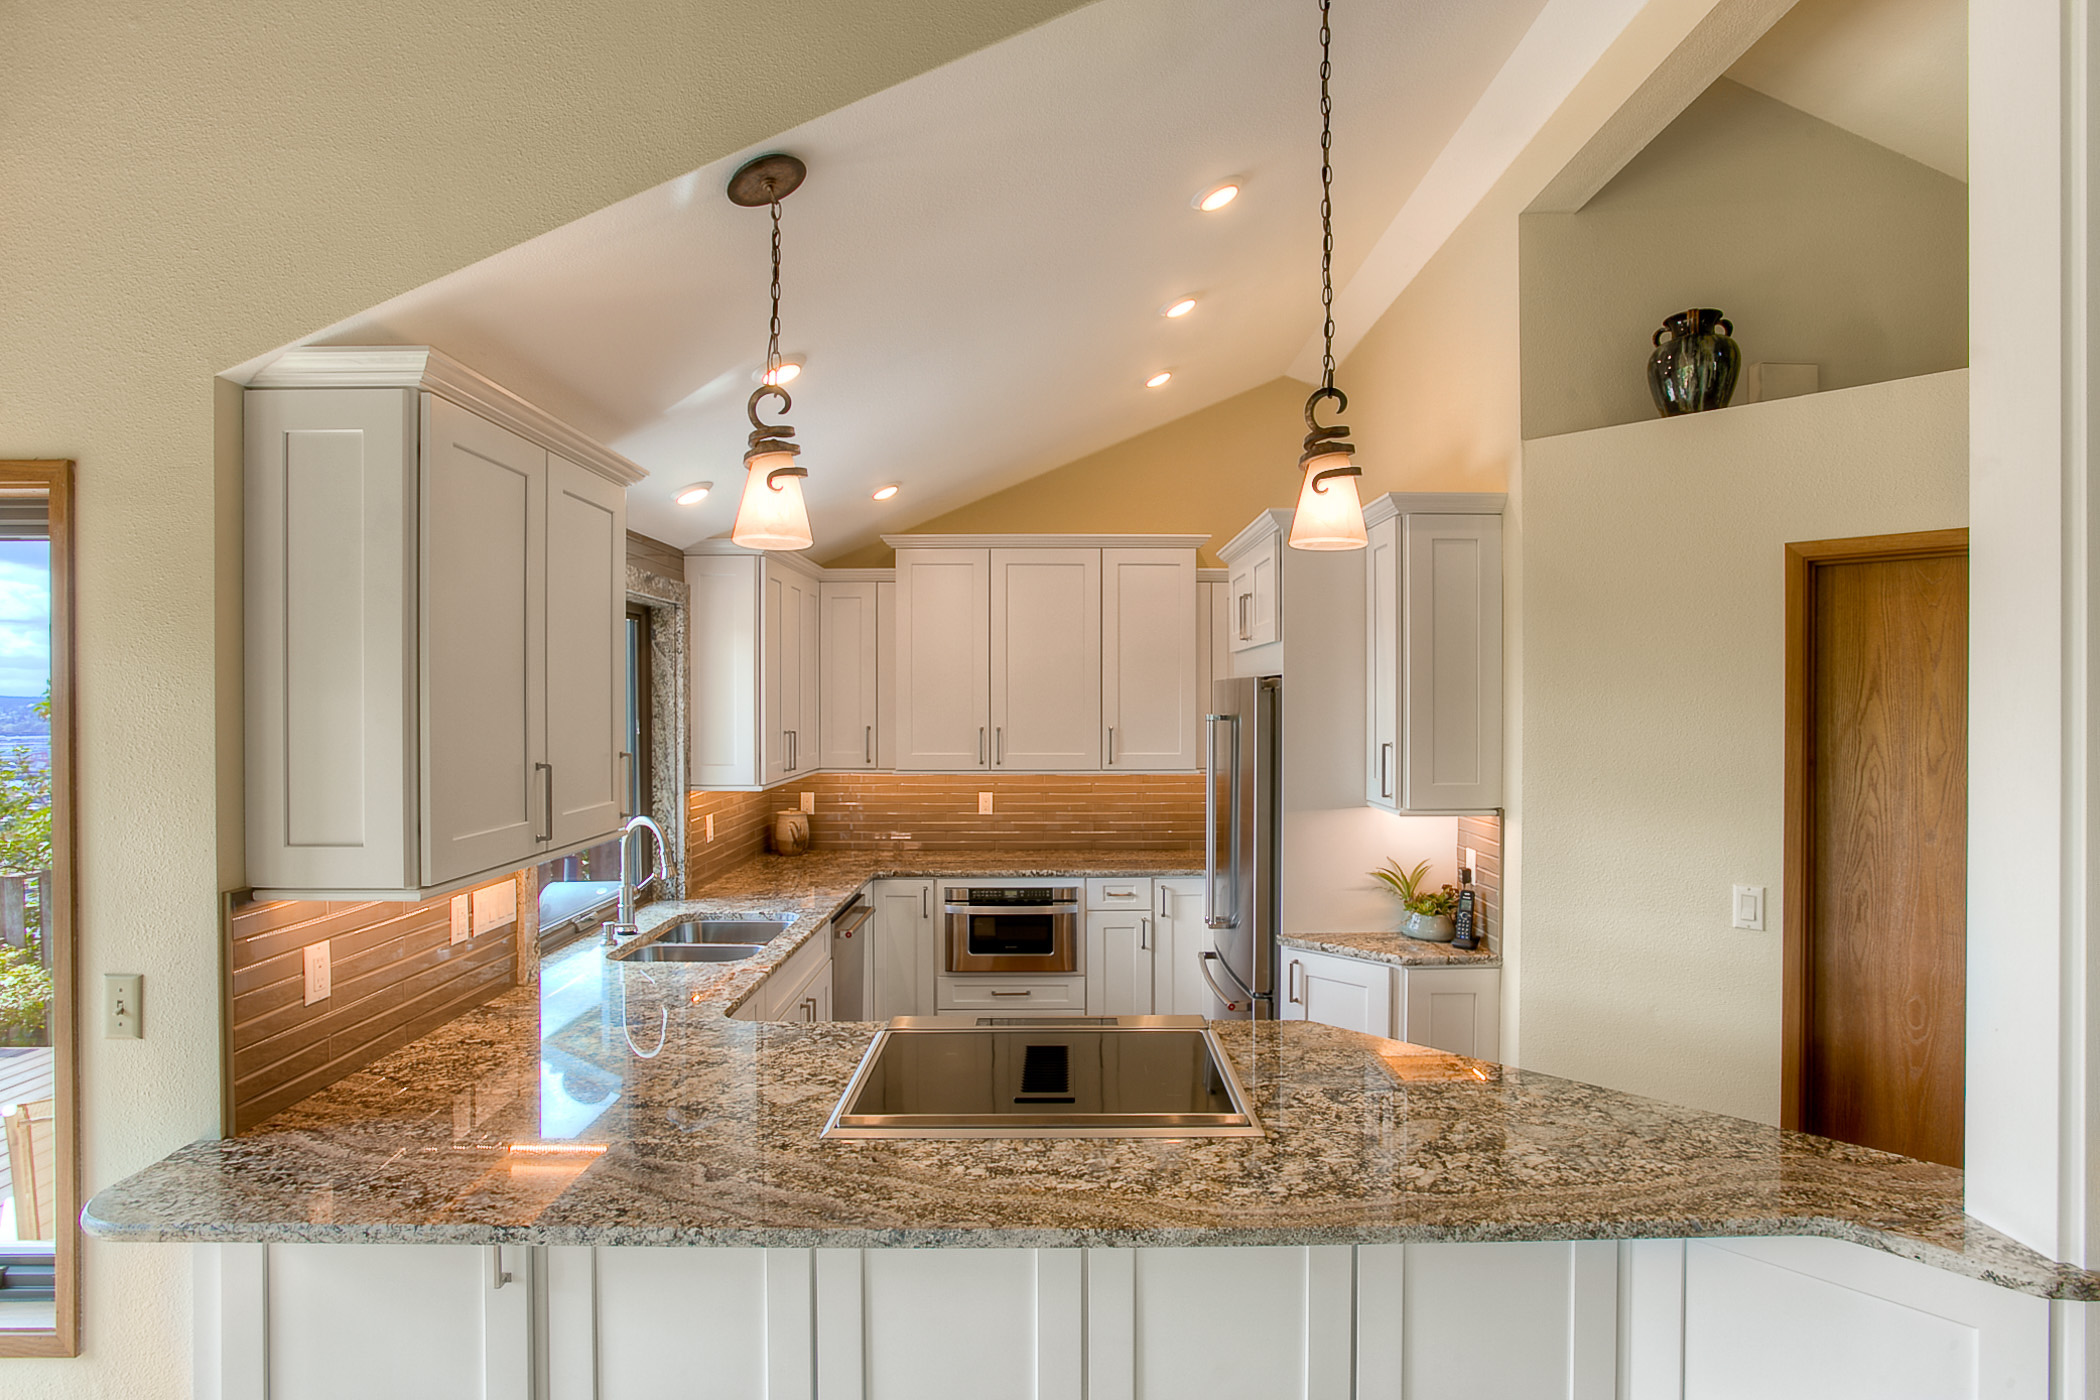 Kitchen Features Overview